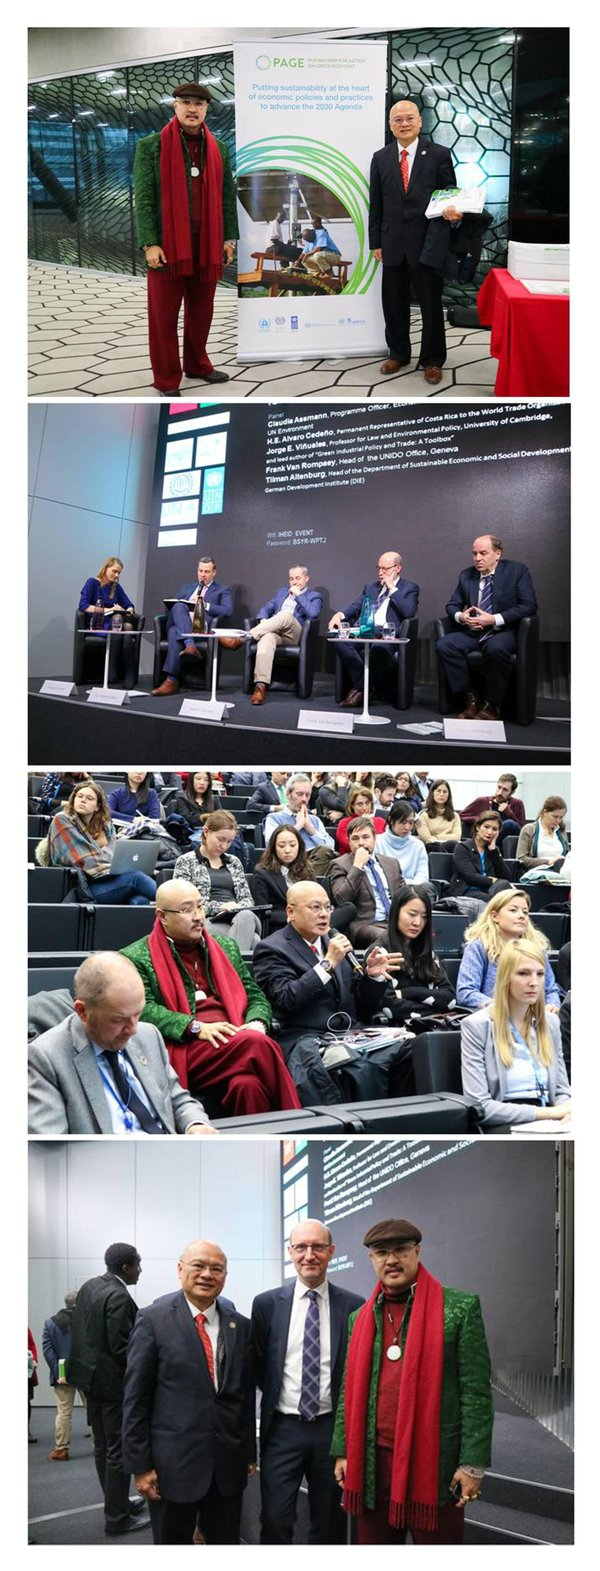 Datoa�� Sri Prof. Ng, Tat-yung and Dr. Johnny Ip were invited to the event; Top experts and scholars exchanged views at event; Dr. Johnny Ip spoke at event; Datoa�� Sri Prof. Ng, Tat-yung and Dr. Ip with Frank Van Rompaey